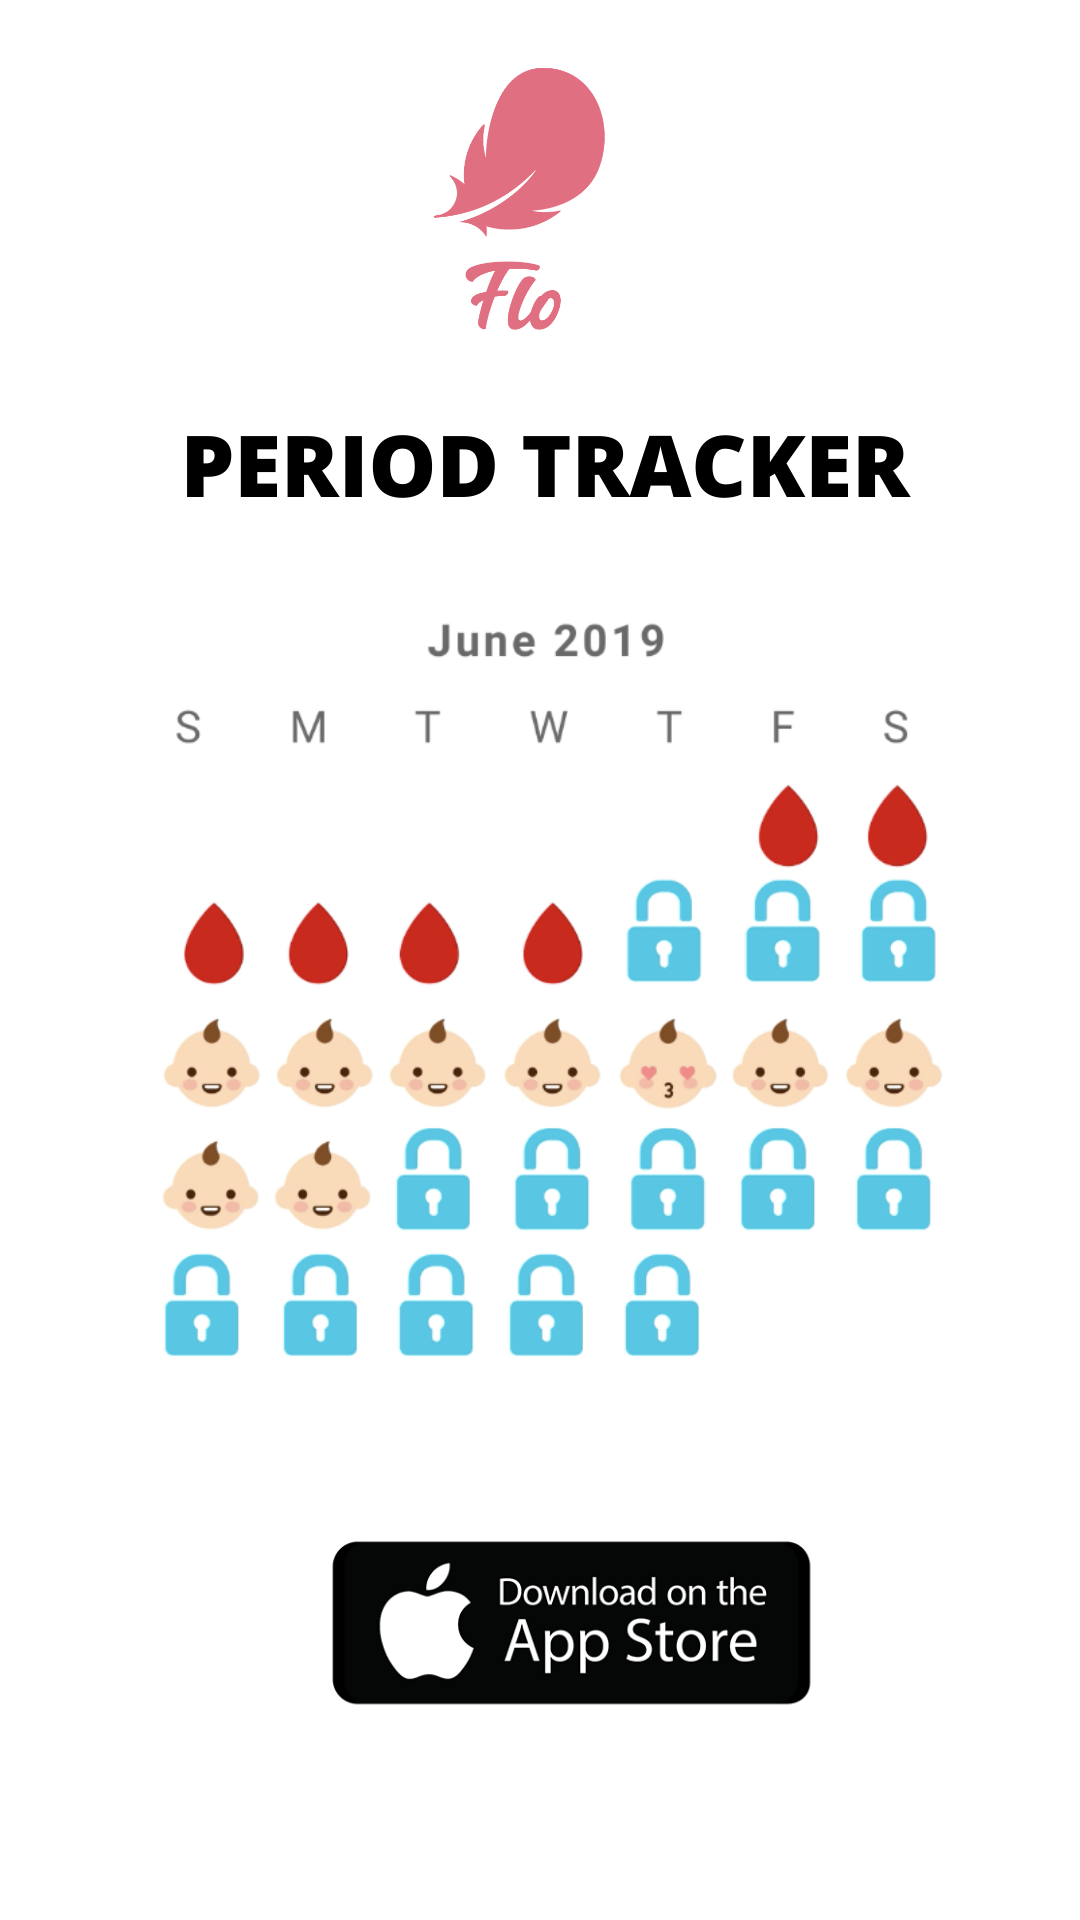 Pin on Flo Period & Ovulation Tracker